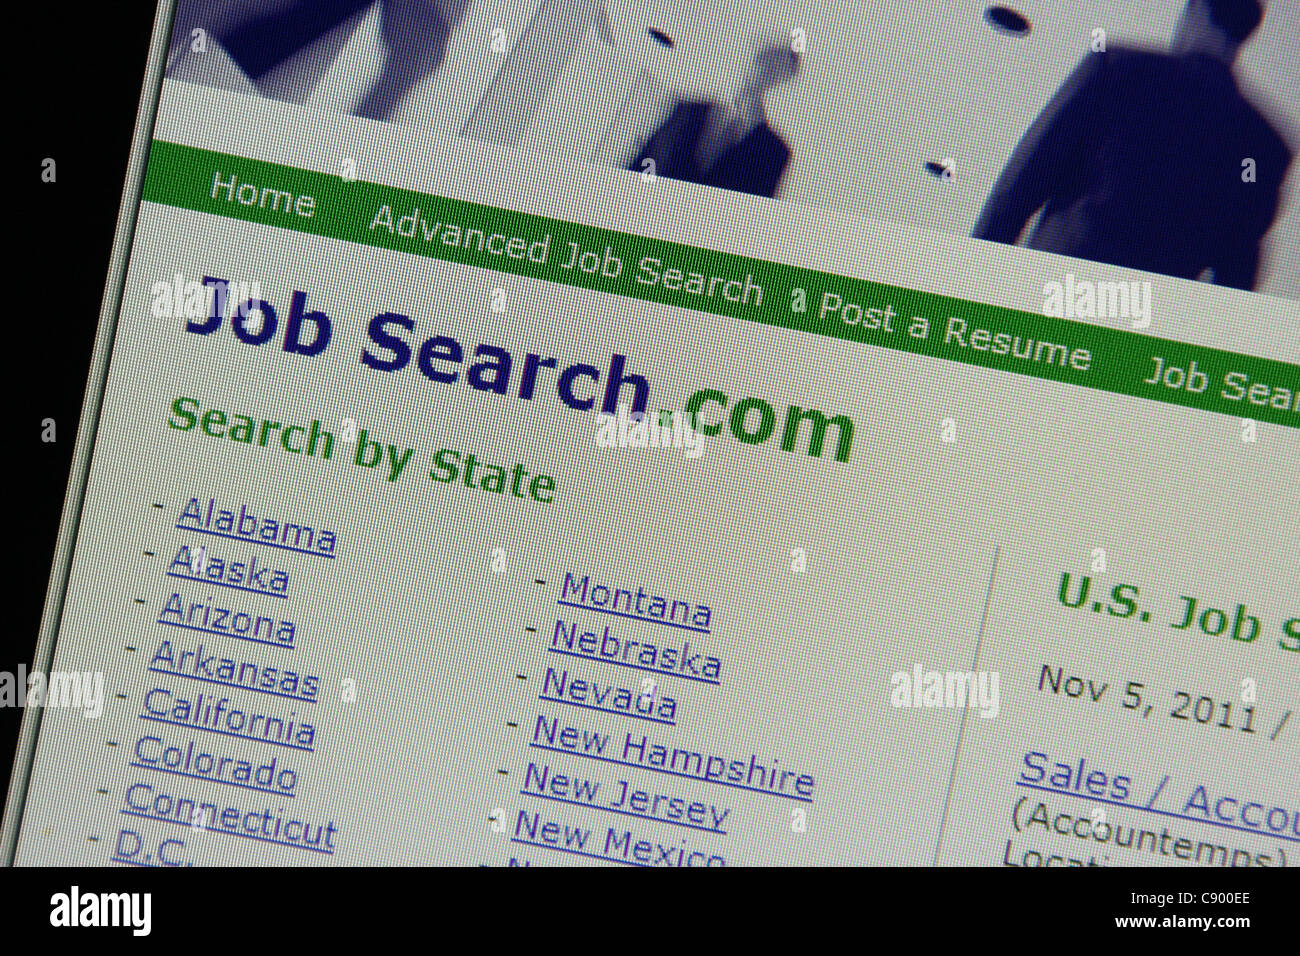 online job search - Stock Image